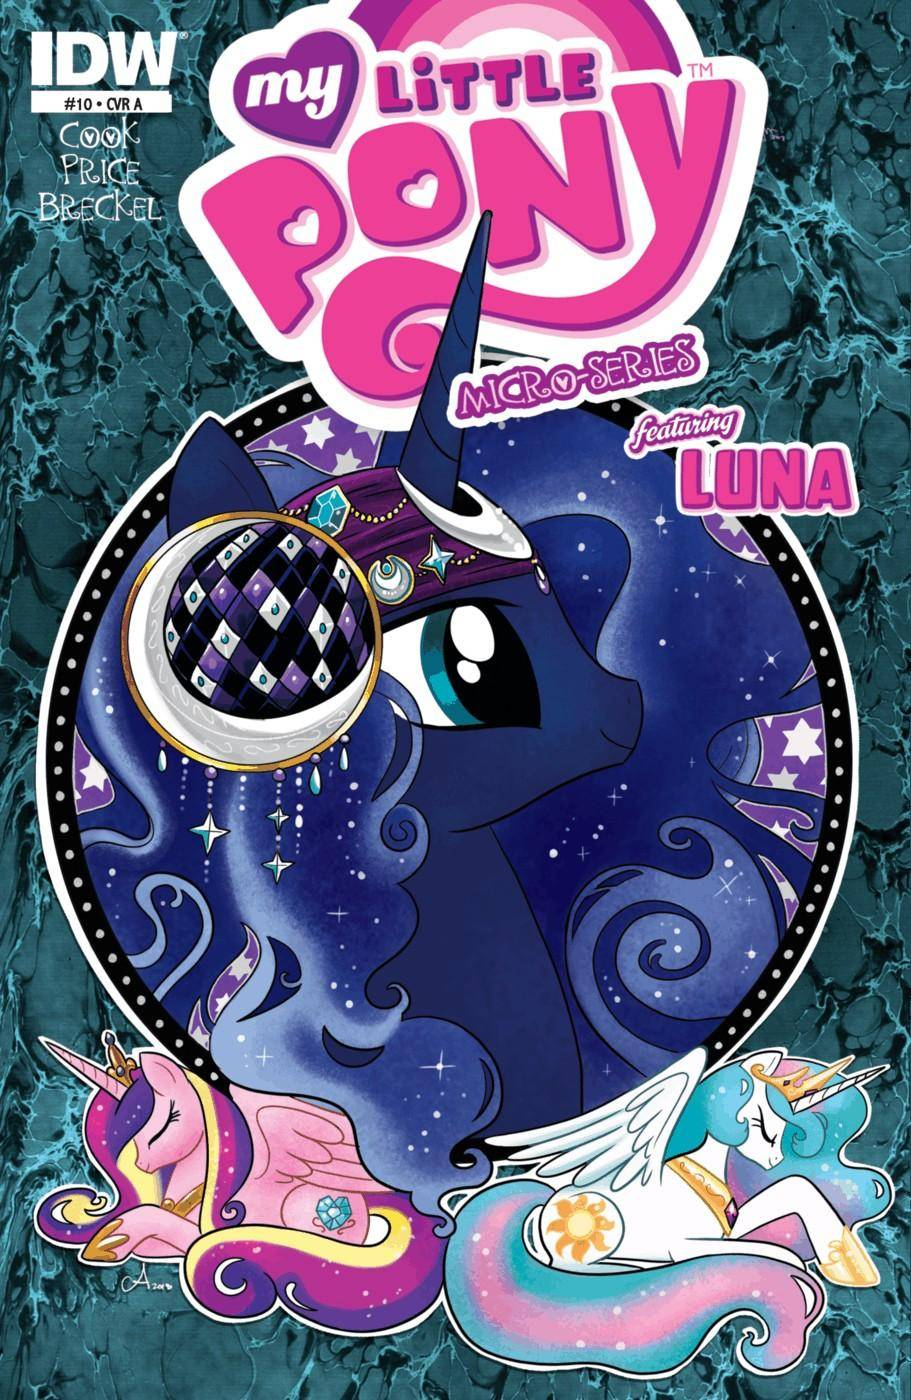 My Little Pony - Micro Series 010 Luna 2013 2 covers digital